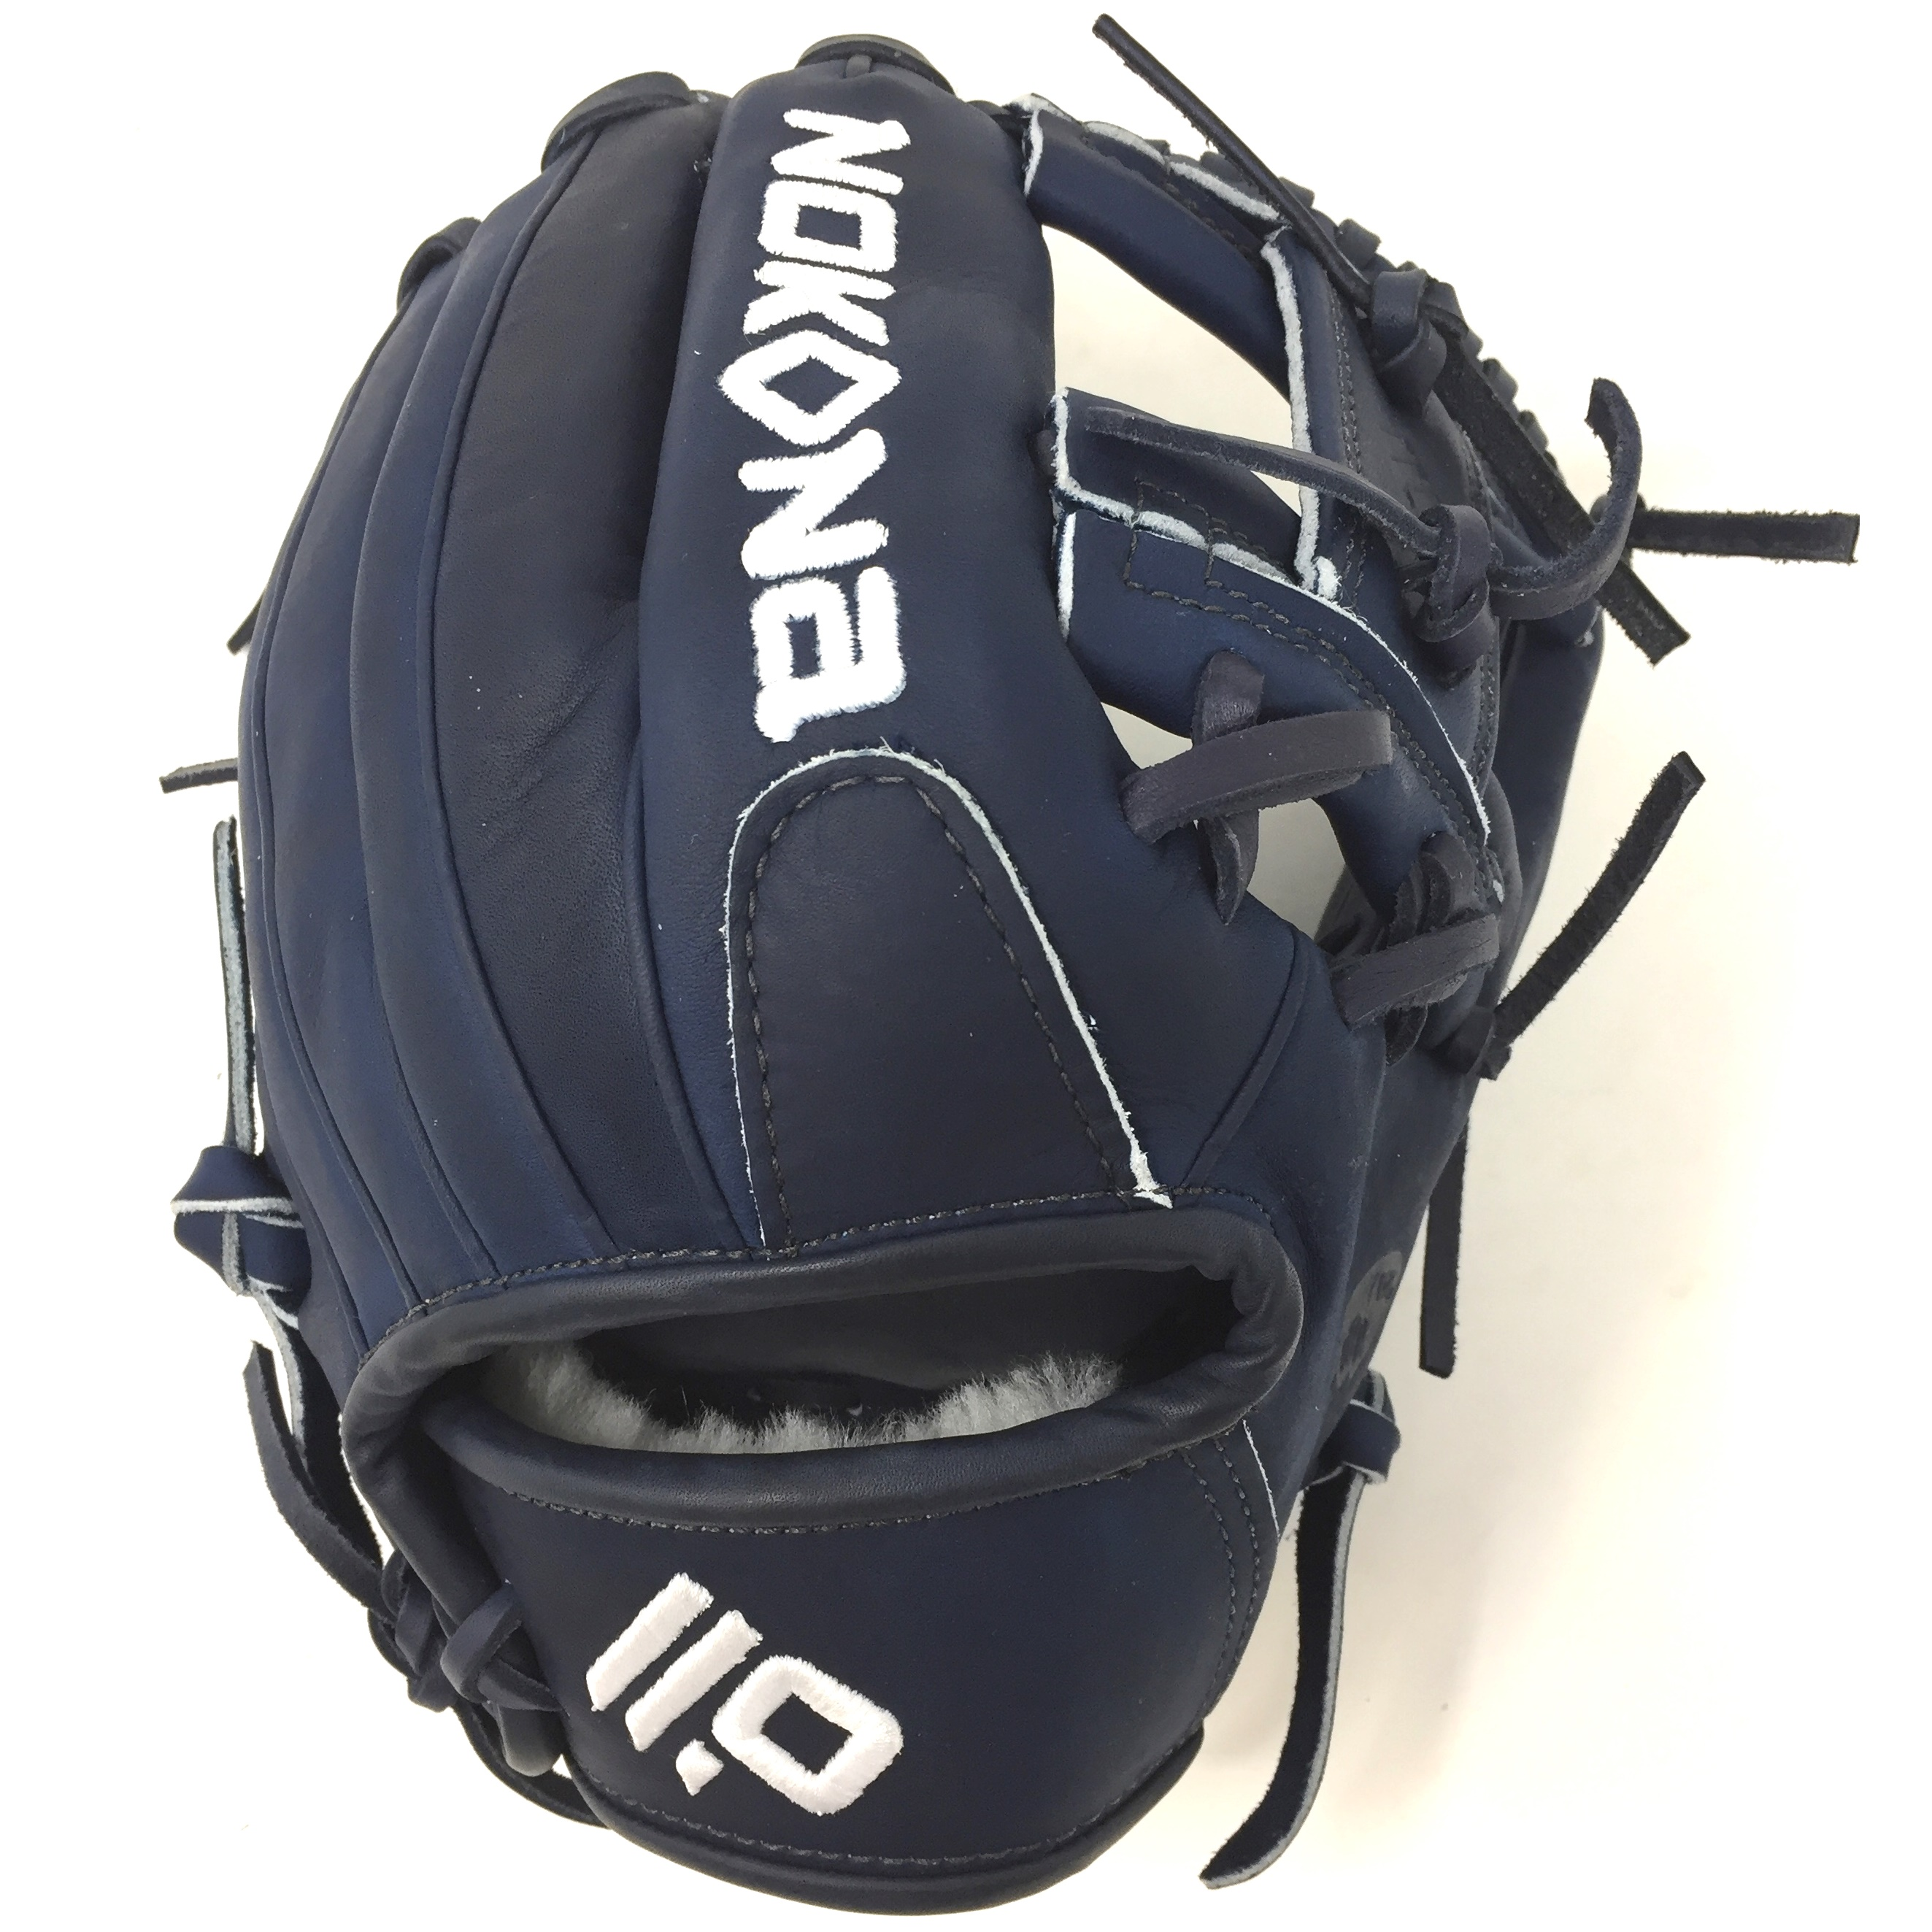 nokona-cobalt-xft-i-web-11-5-inch-xft-1150-baseball-glove-right-hand-throw XFT-1150I-CO-RightHandThrow  808808891369 <span>The all new limited edition Cobalt-XFT from Nokona is constructed from